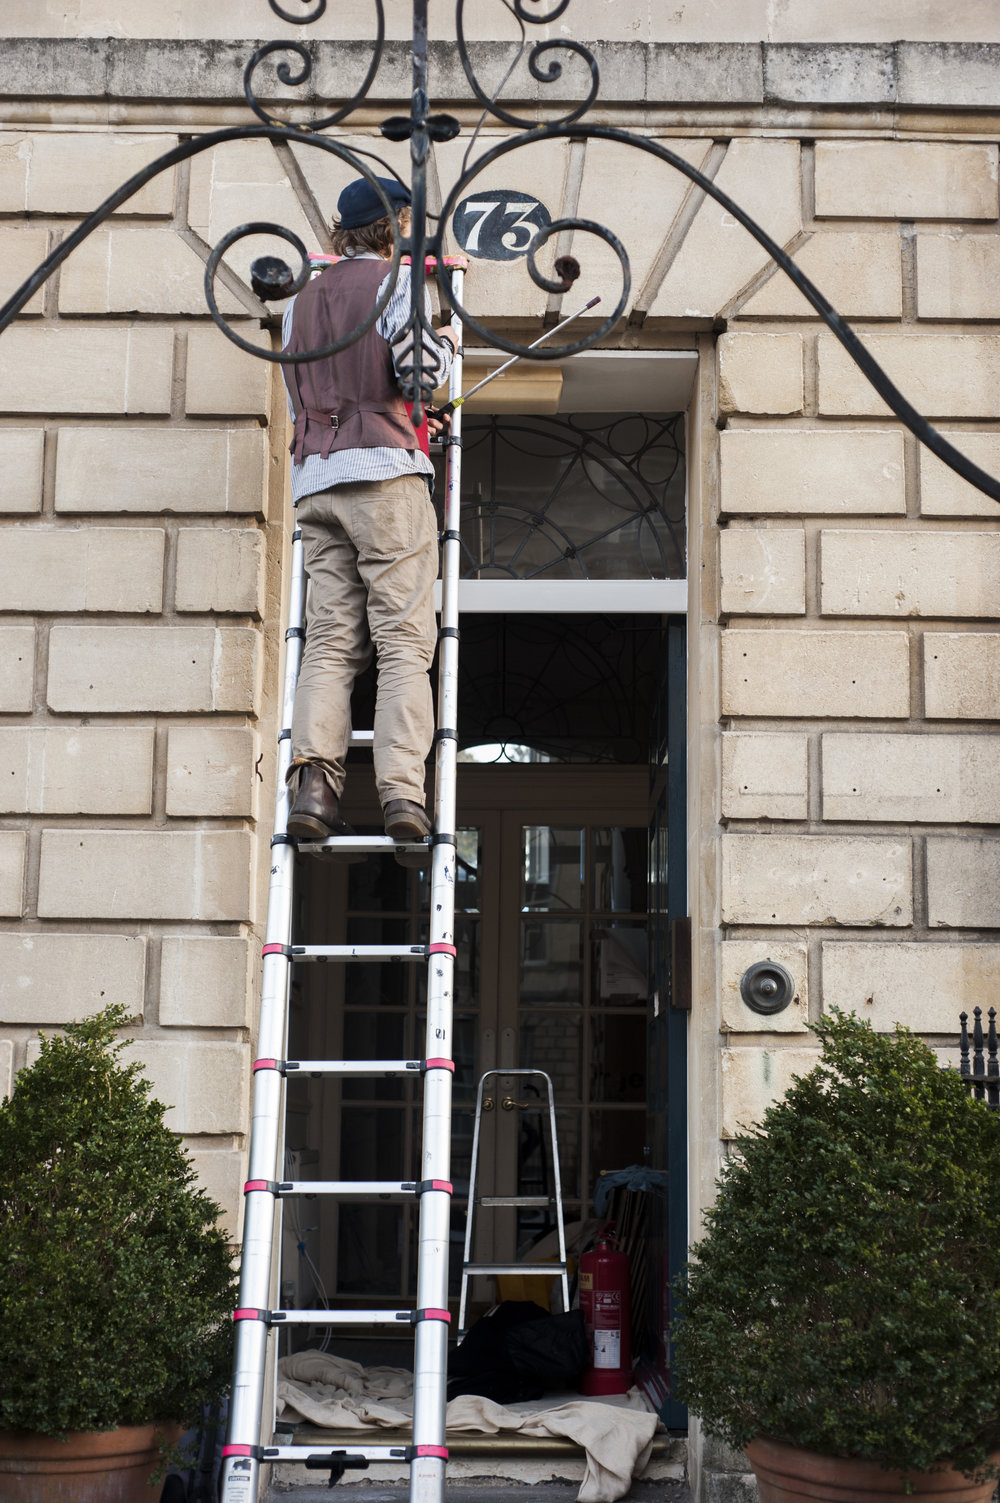 Traditional Sign Writing Pultney St Bath091116.jpg